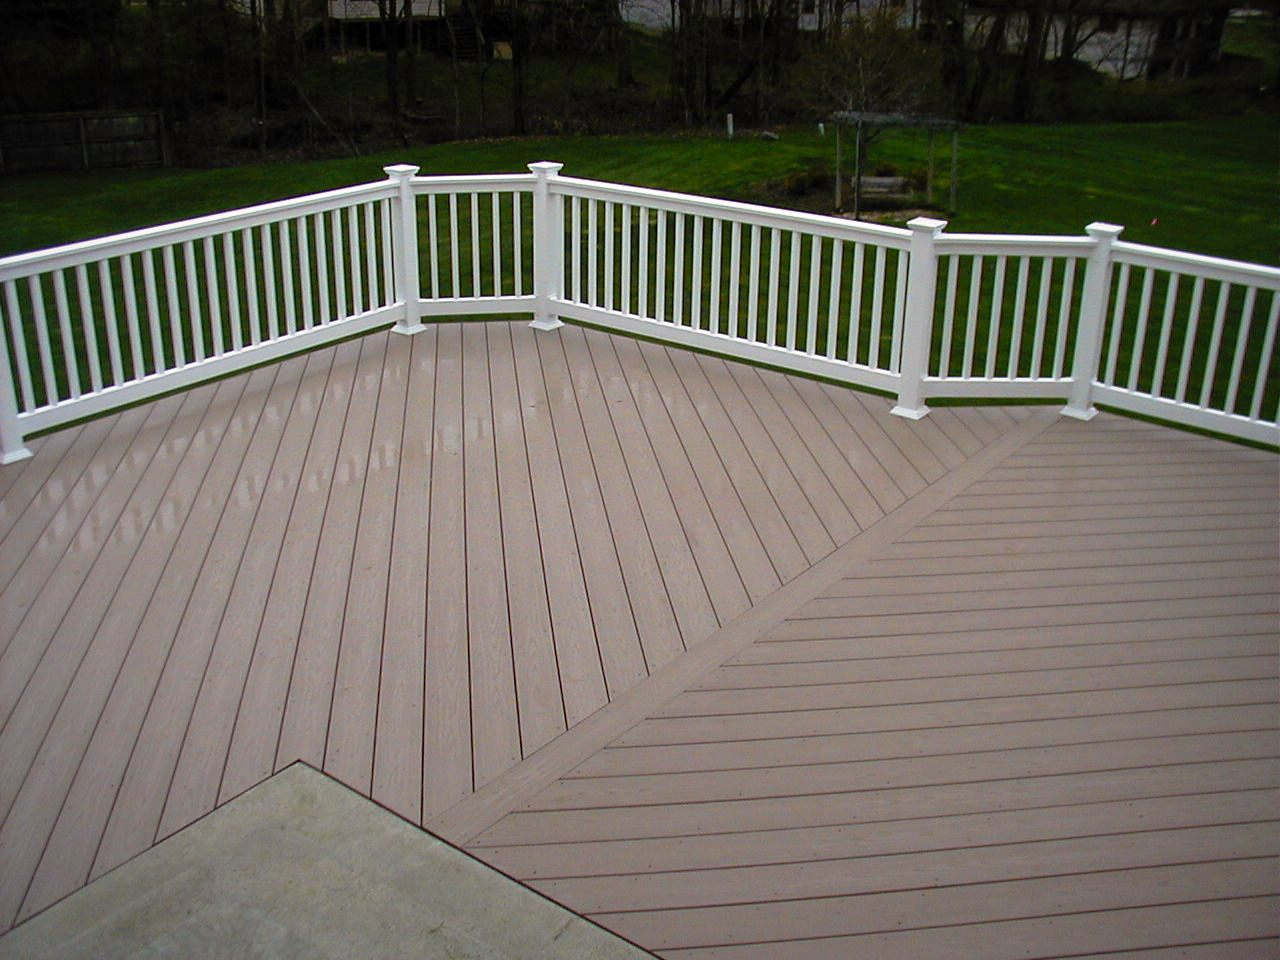 Wood decks pvc vs wood decks for What is the best wood for decking